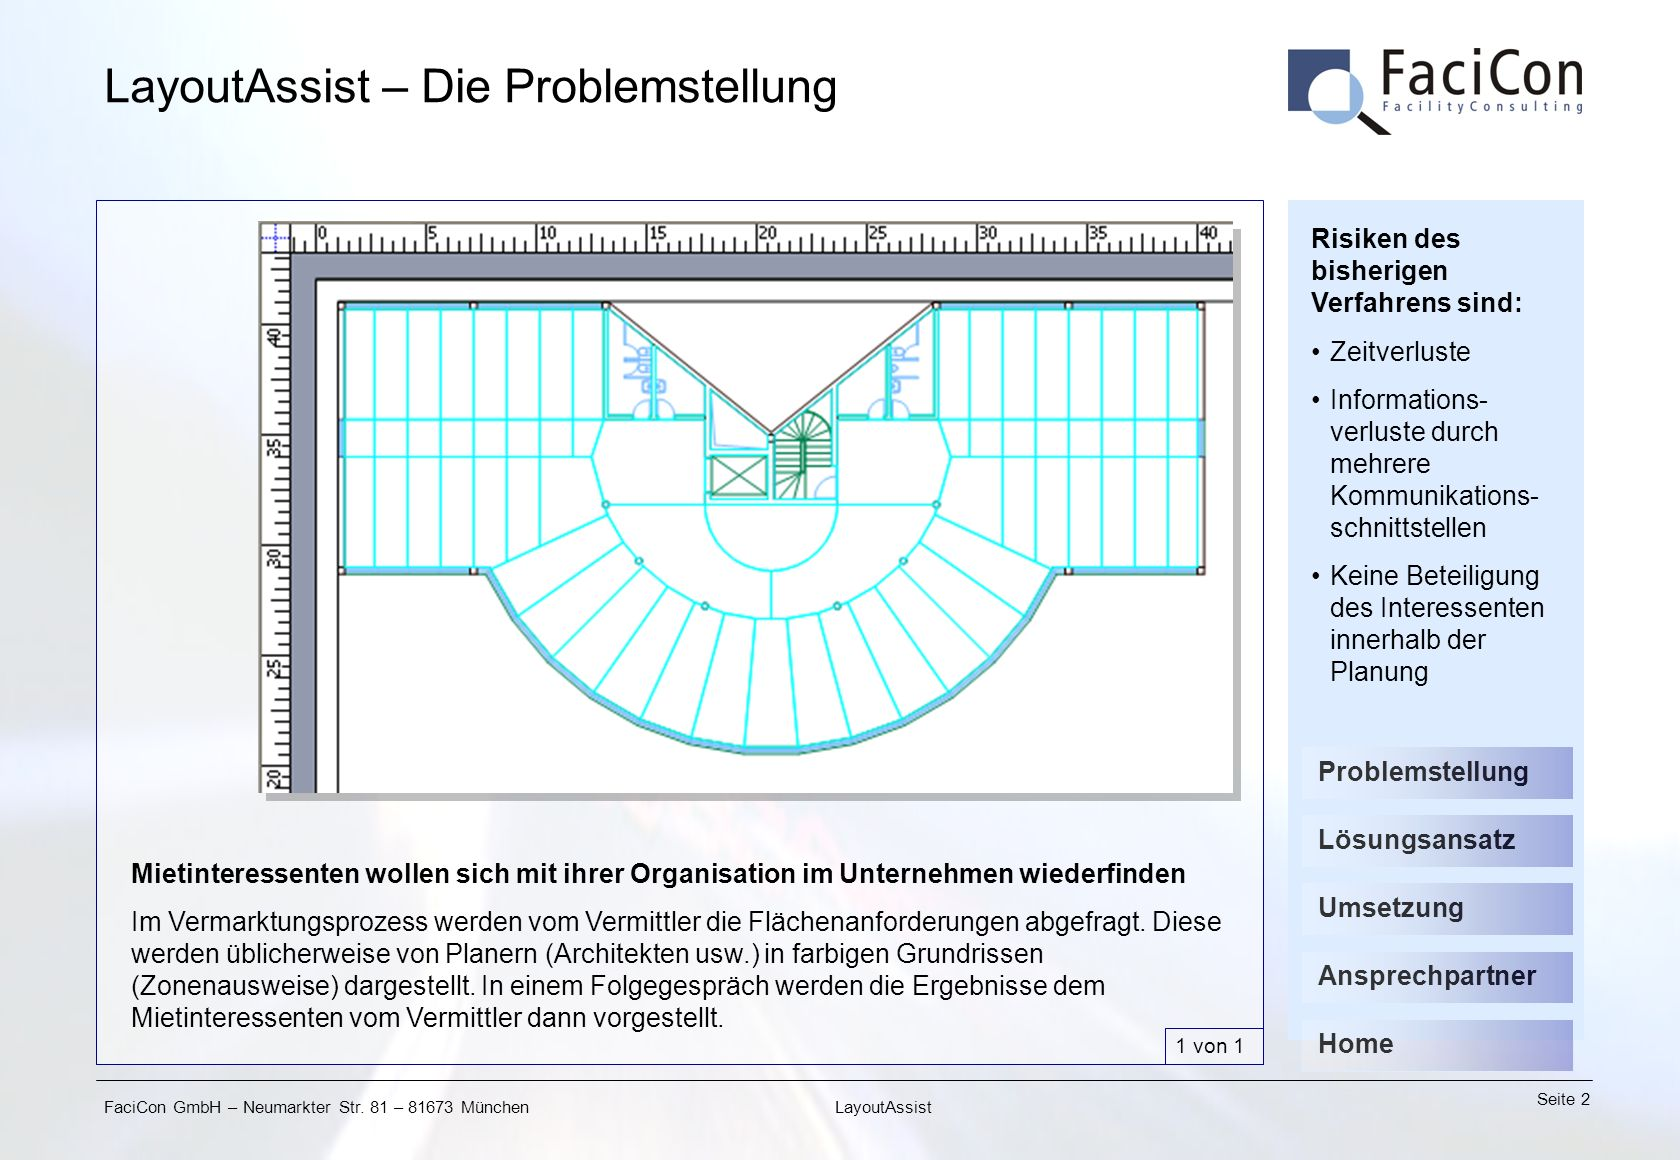 LayoutAssist – Die Problemstellung